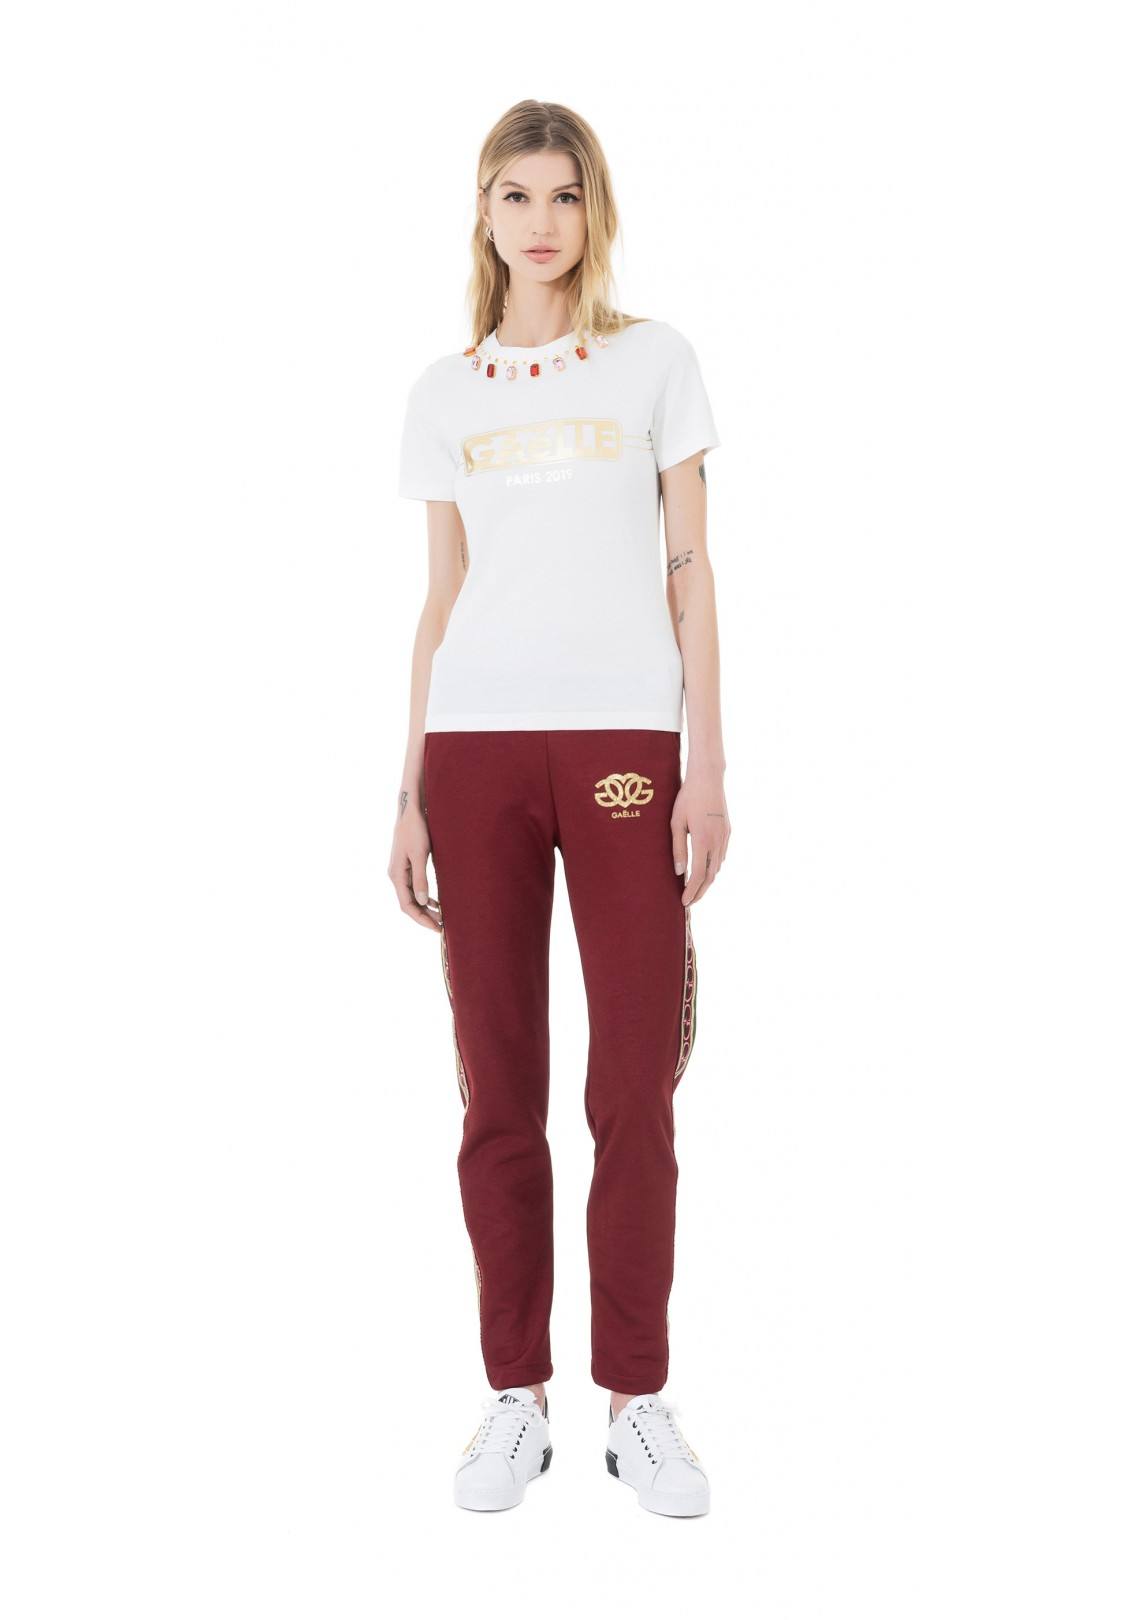 T-SHIRT - GBD4960 - GAELLE PARIS